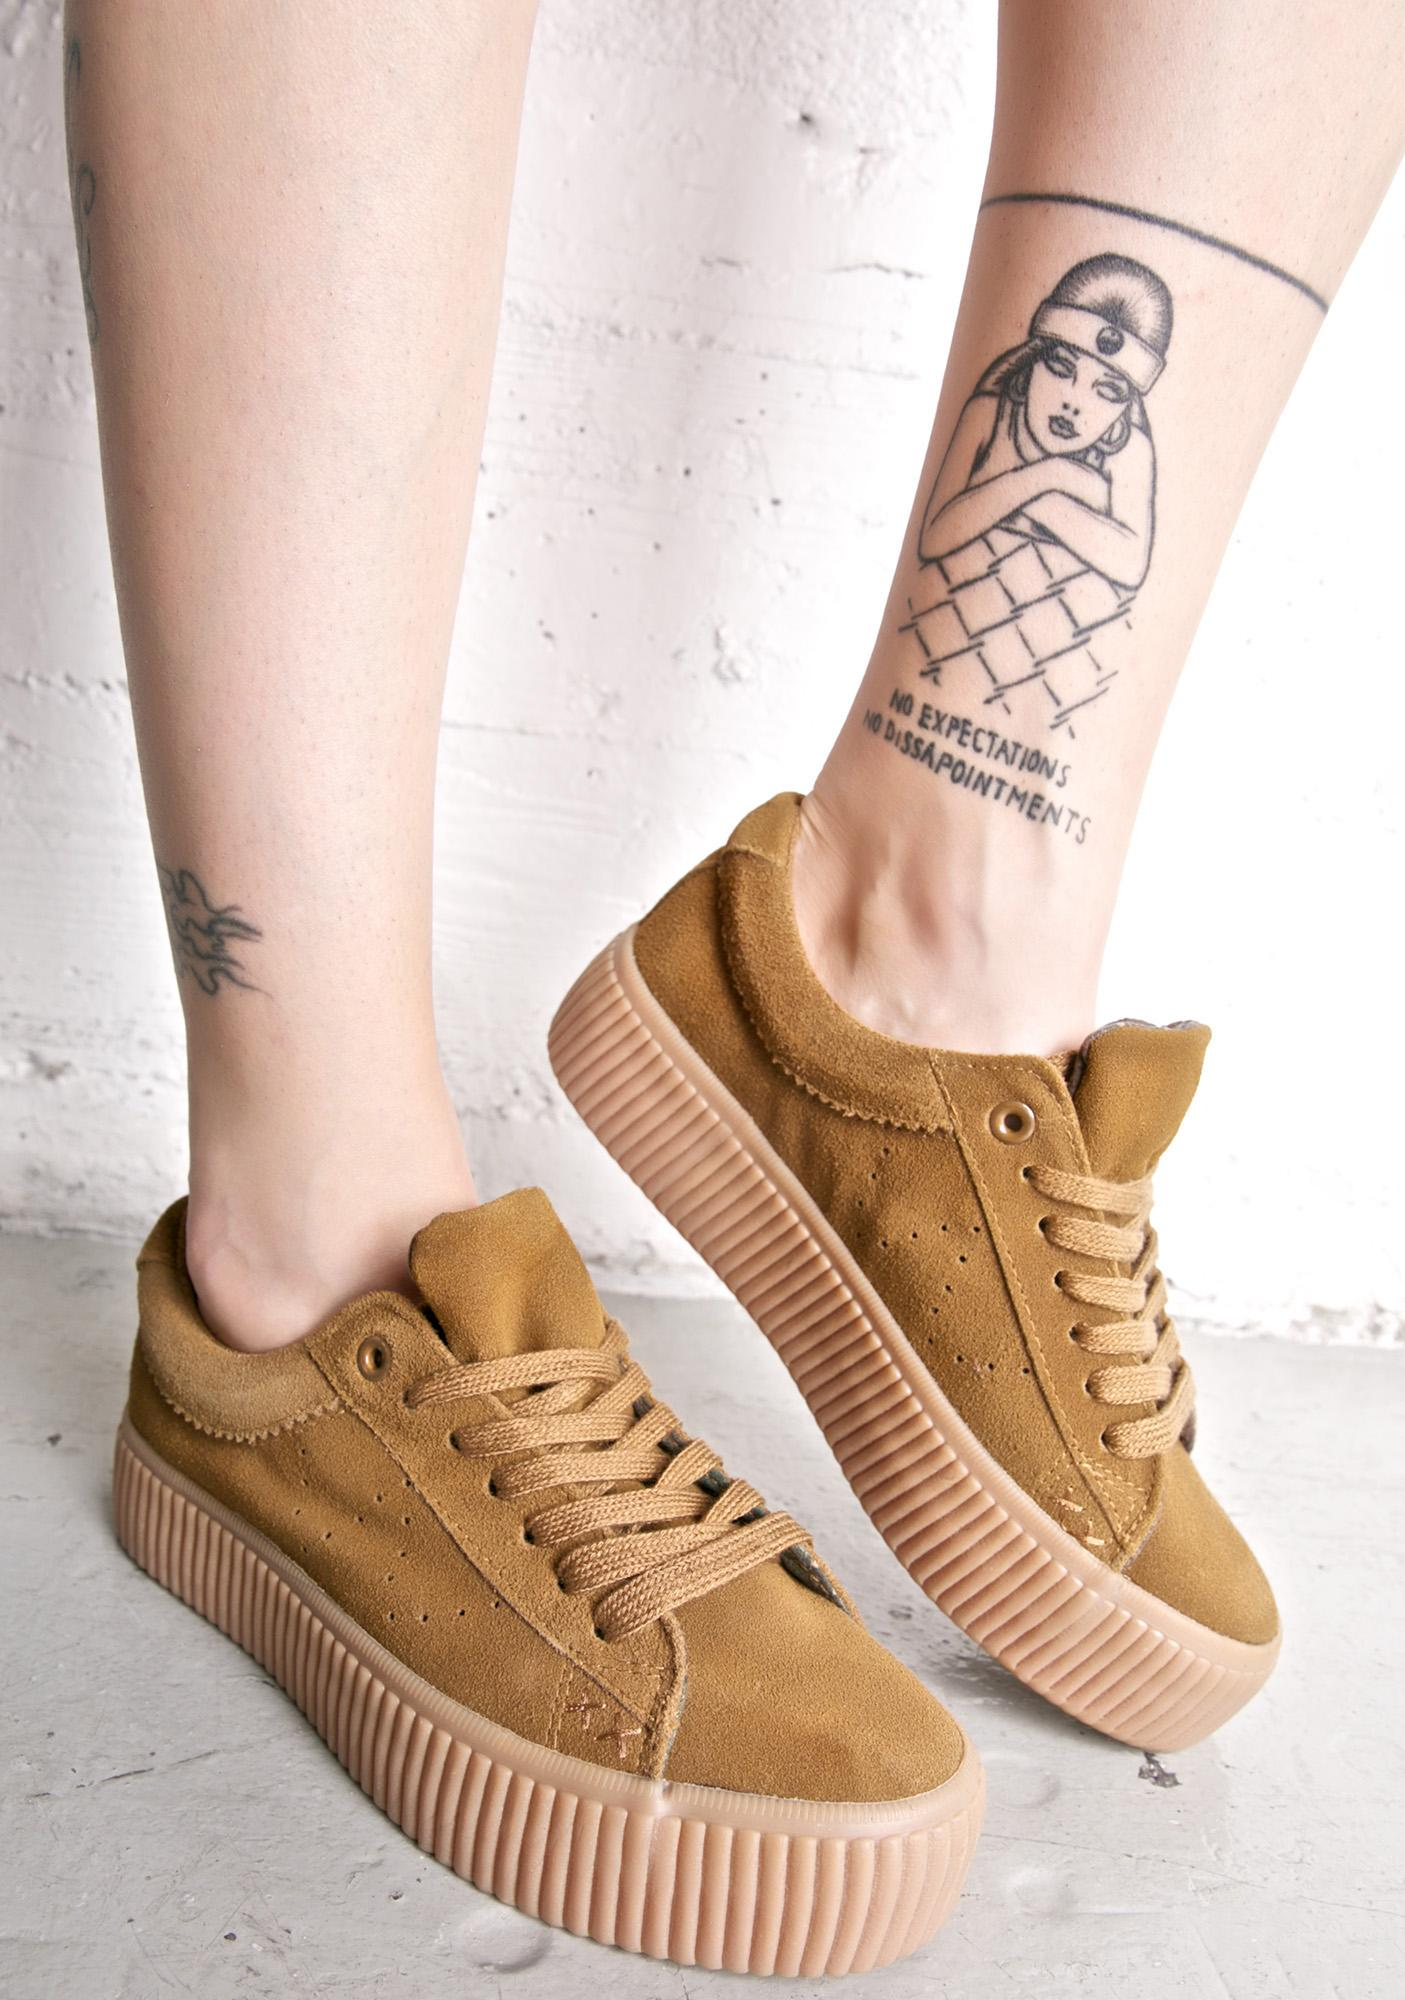 Desperado Creeper Sneaker